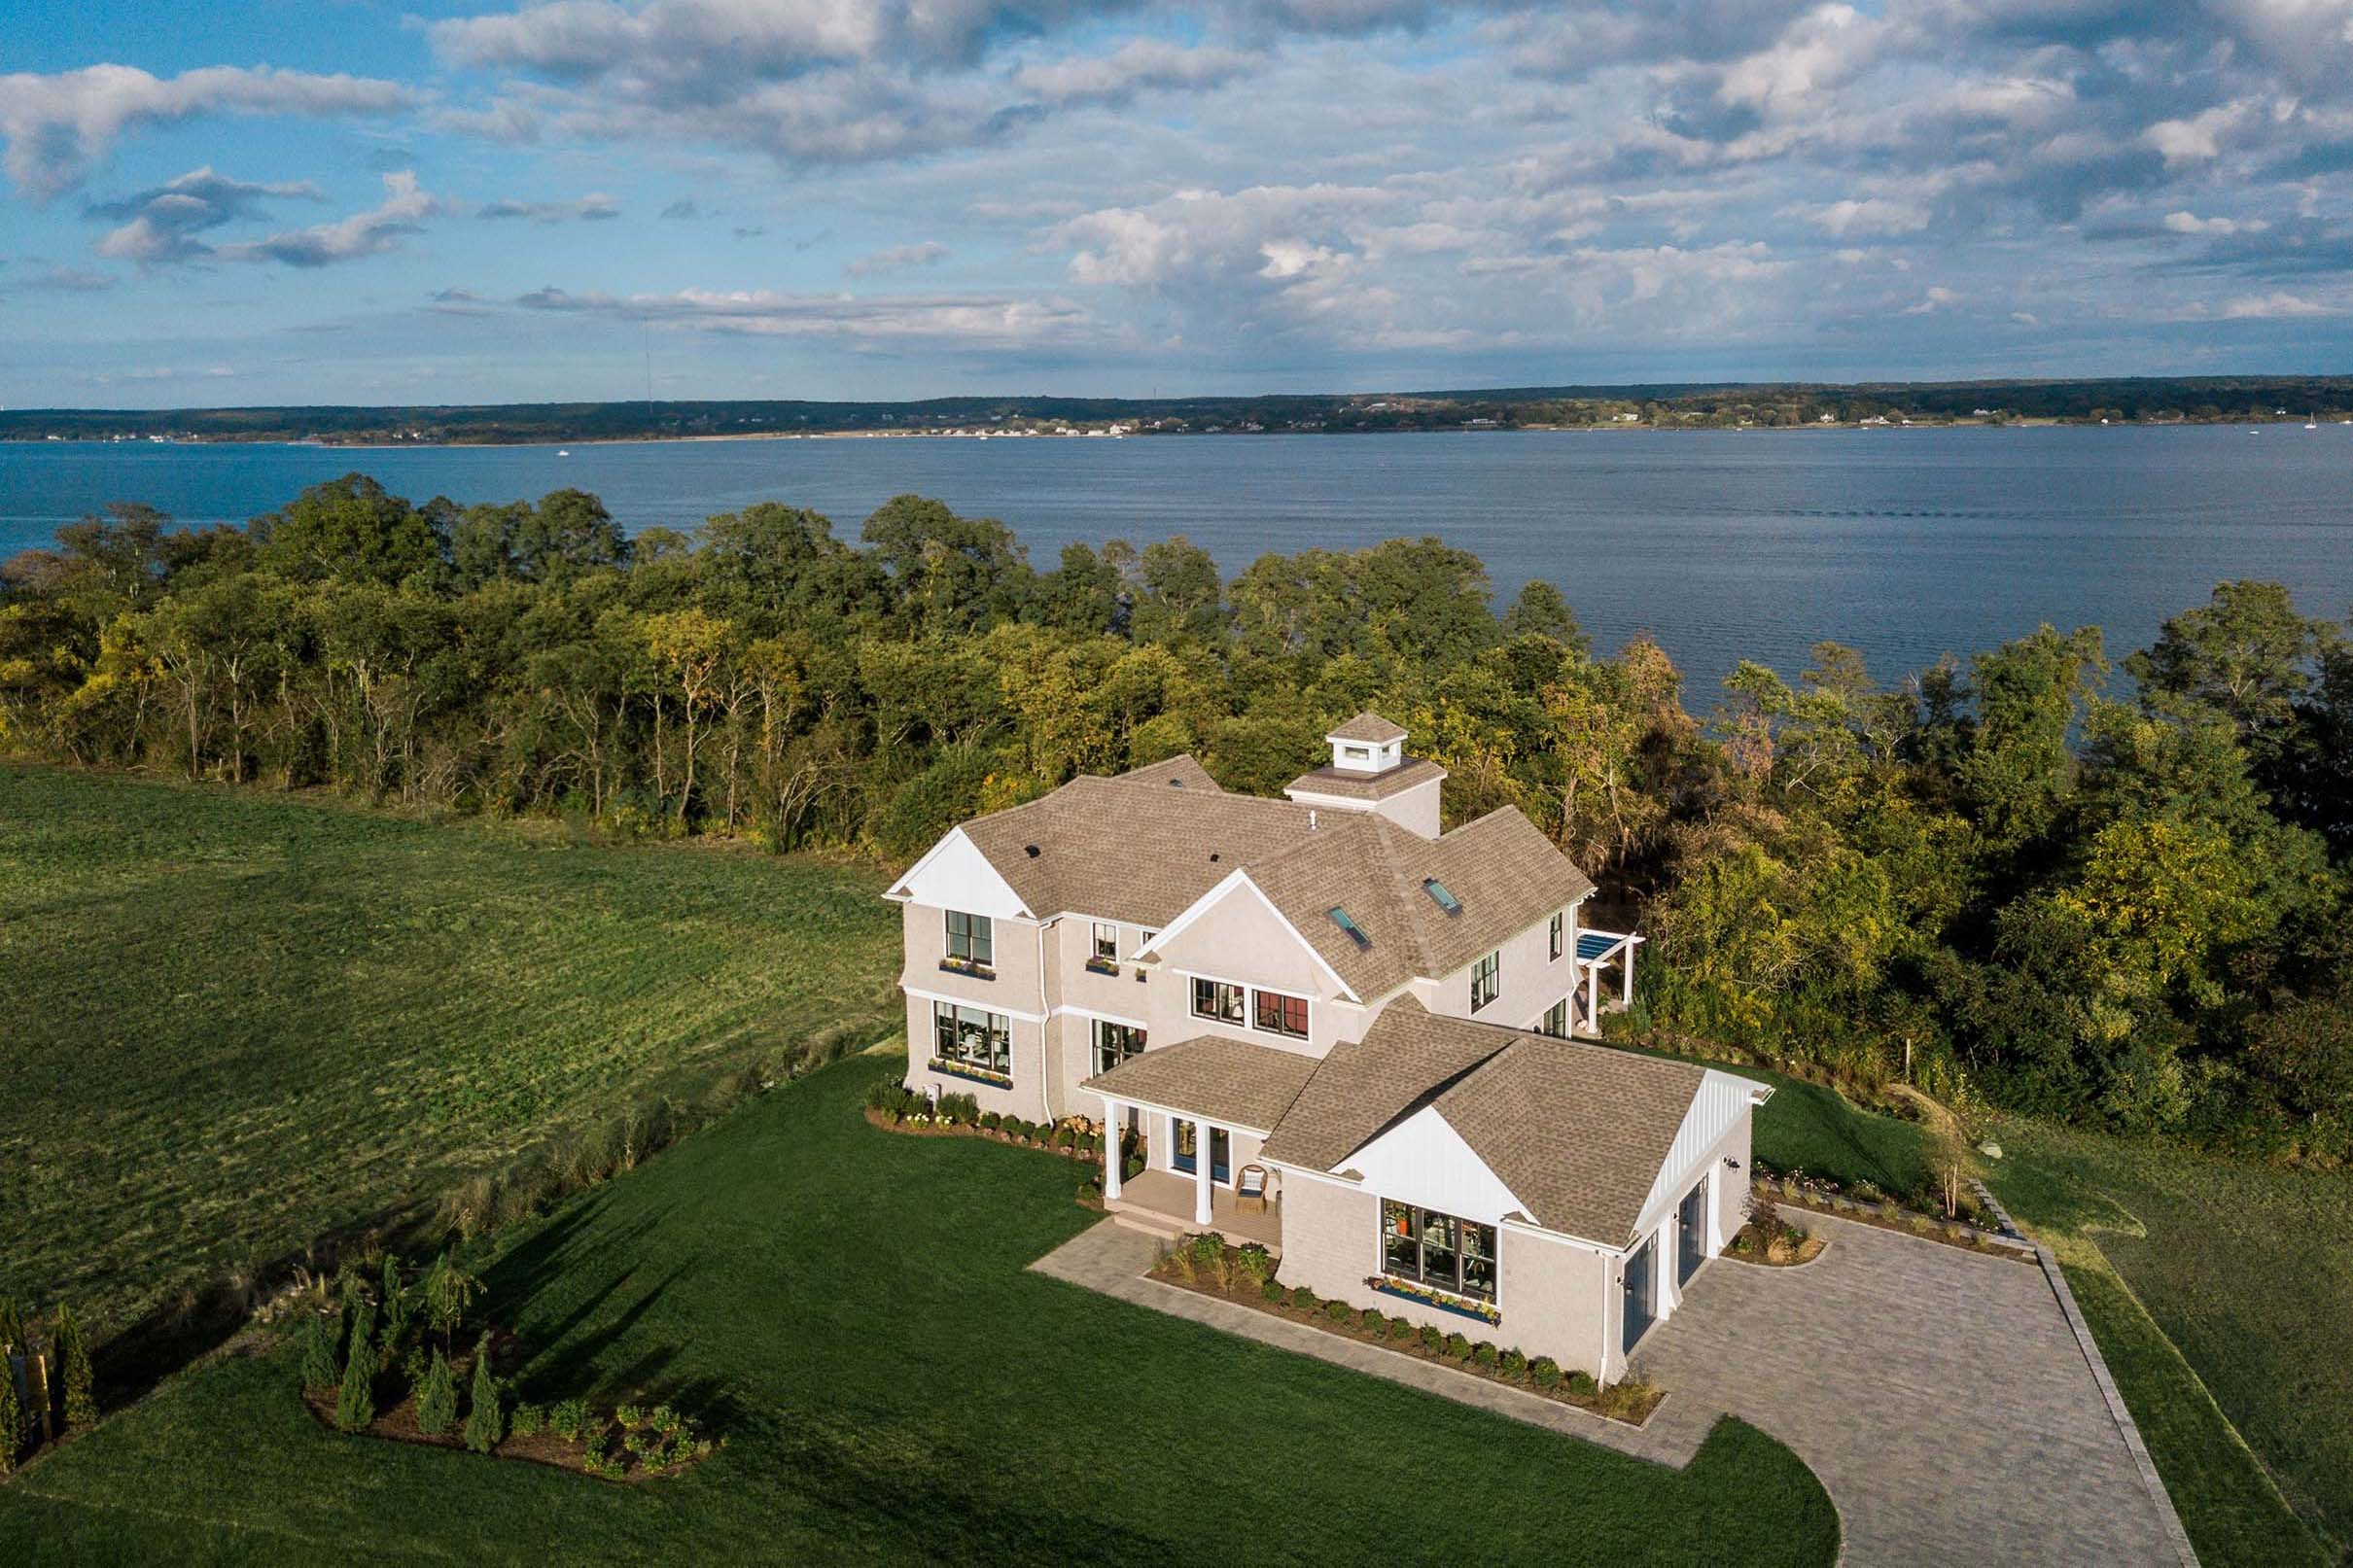 Aerial view of waterfront home small